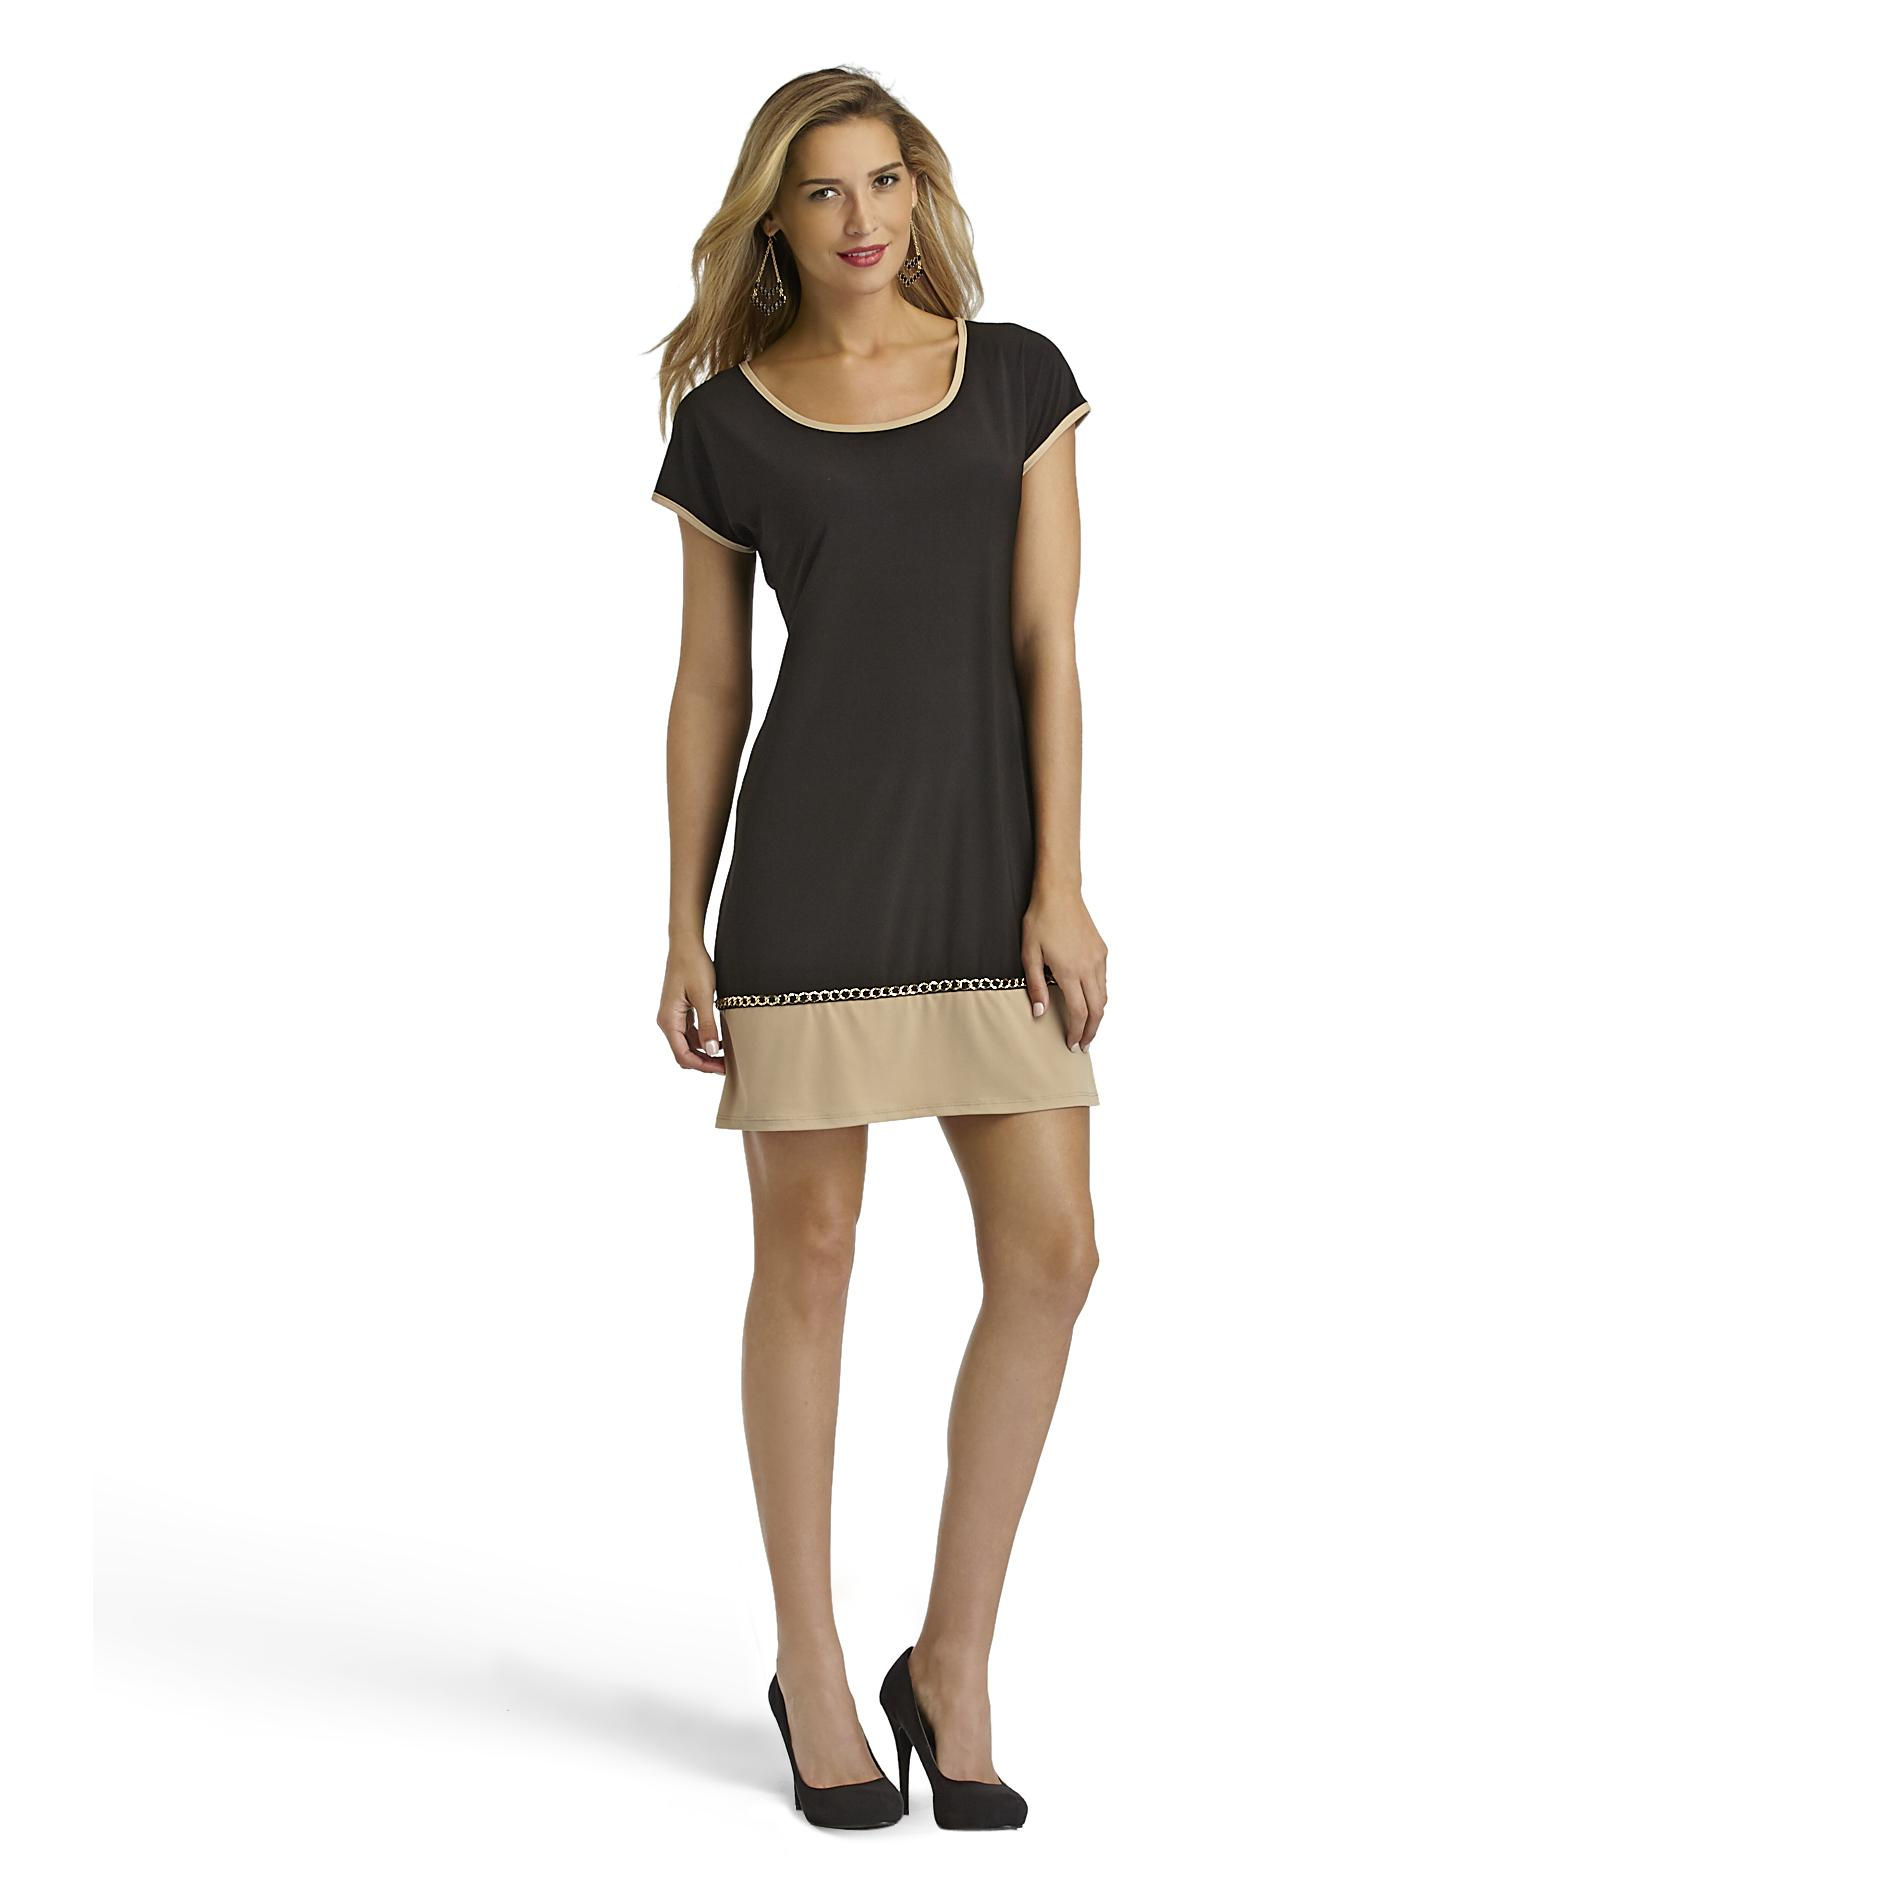 Sears has the best selection of Dresses in stock. Get the Dresses you want from the brands you love today at Sears.